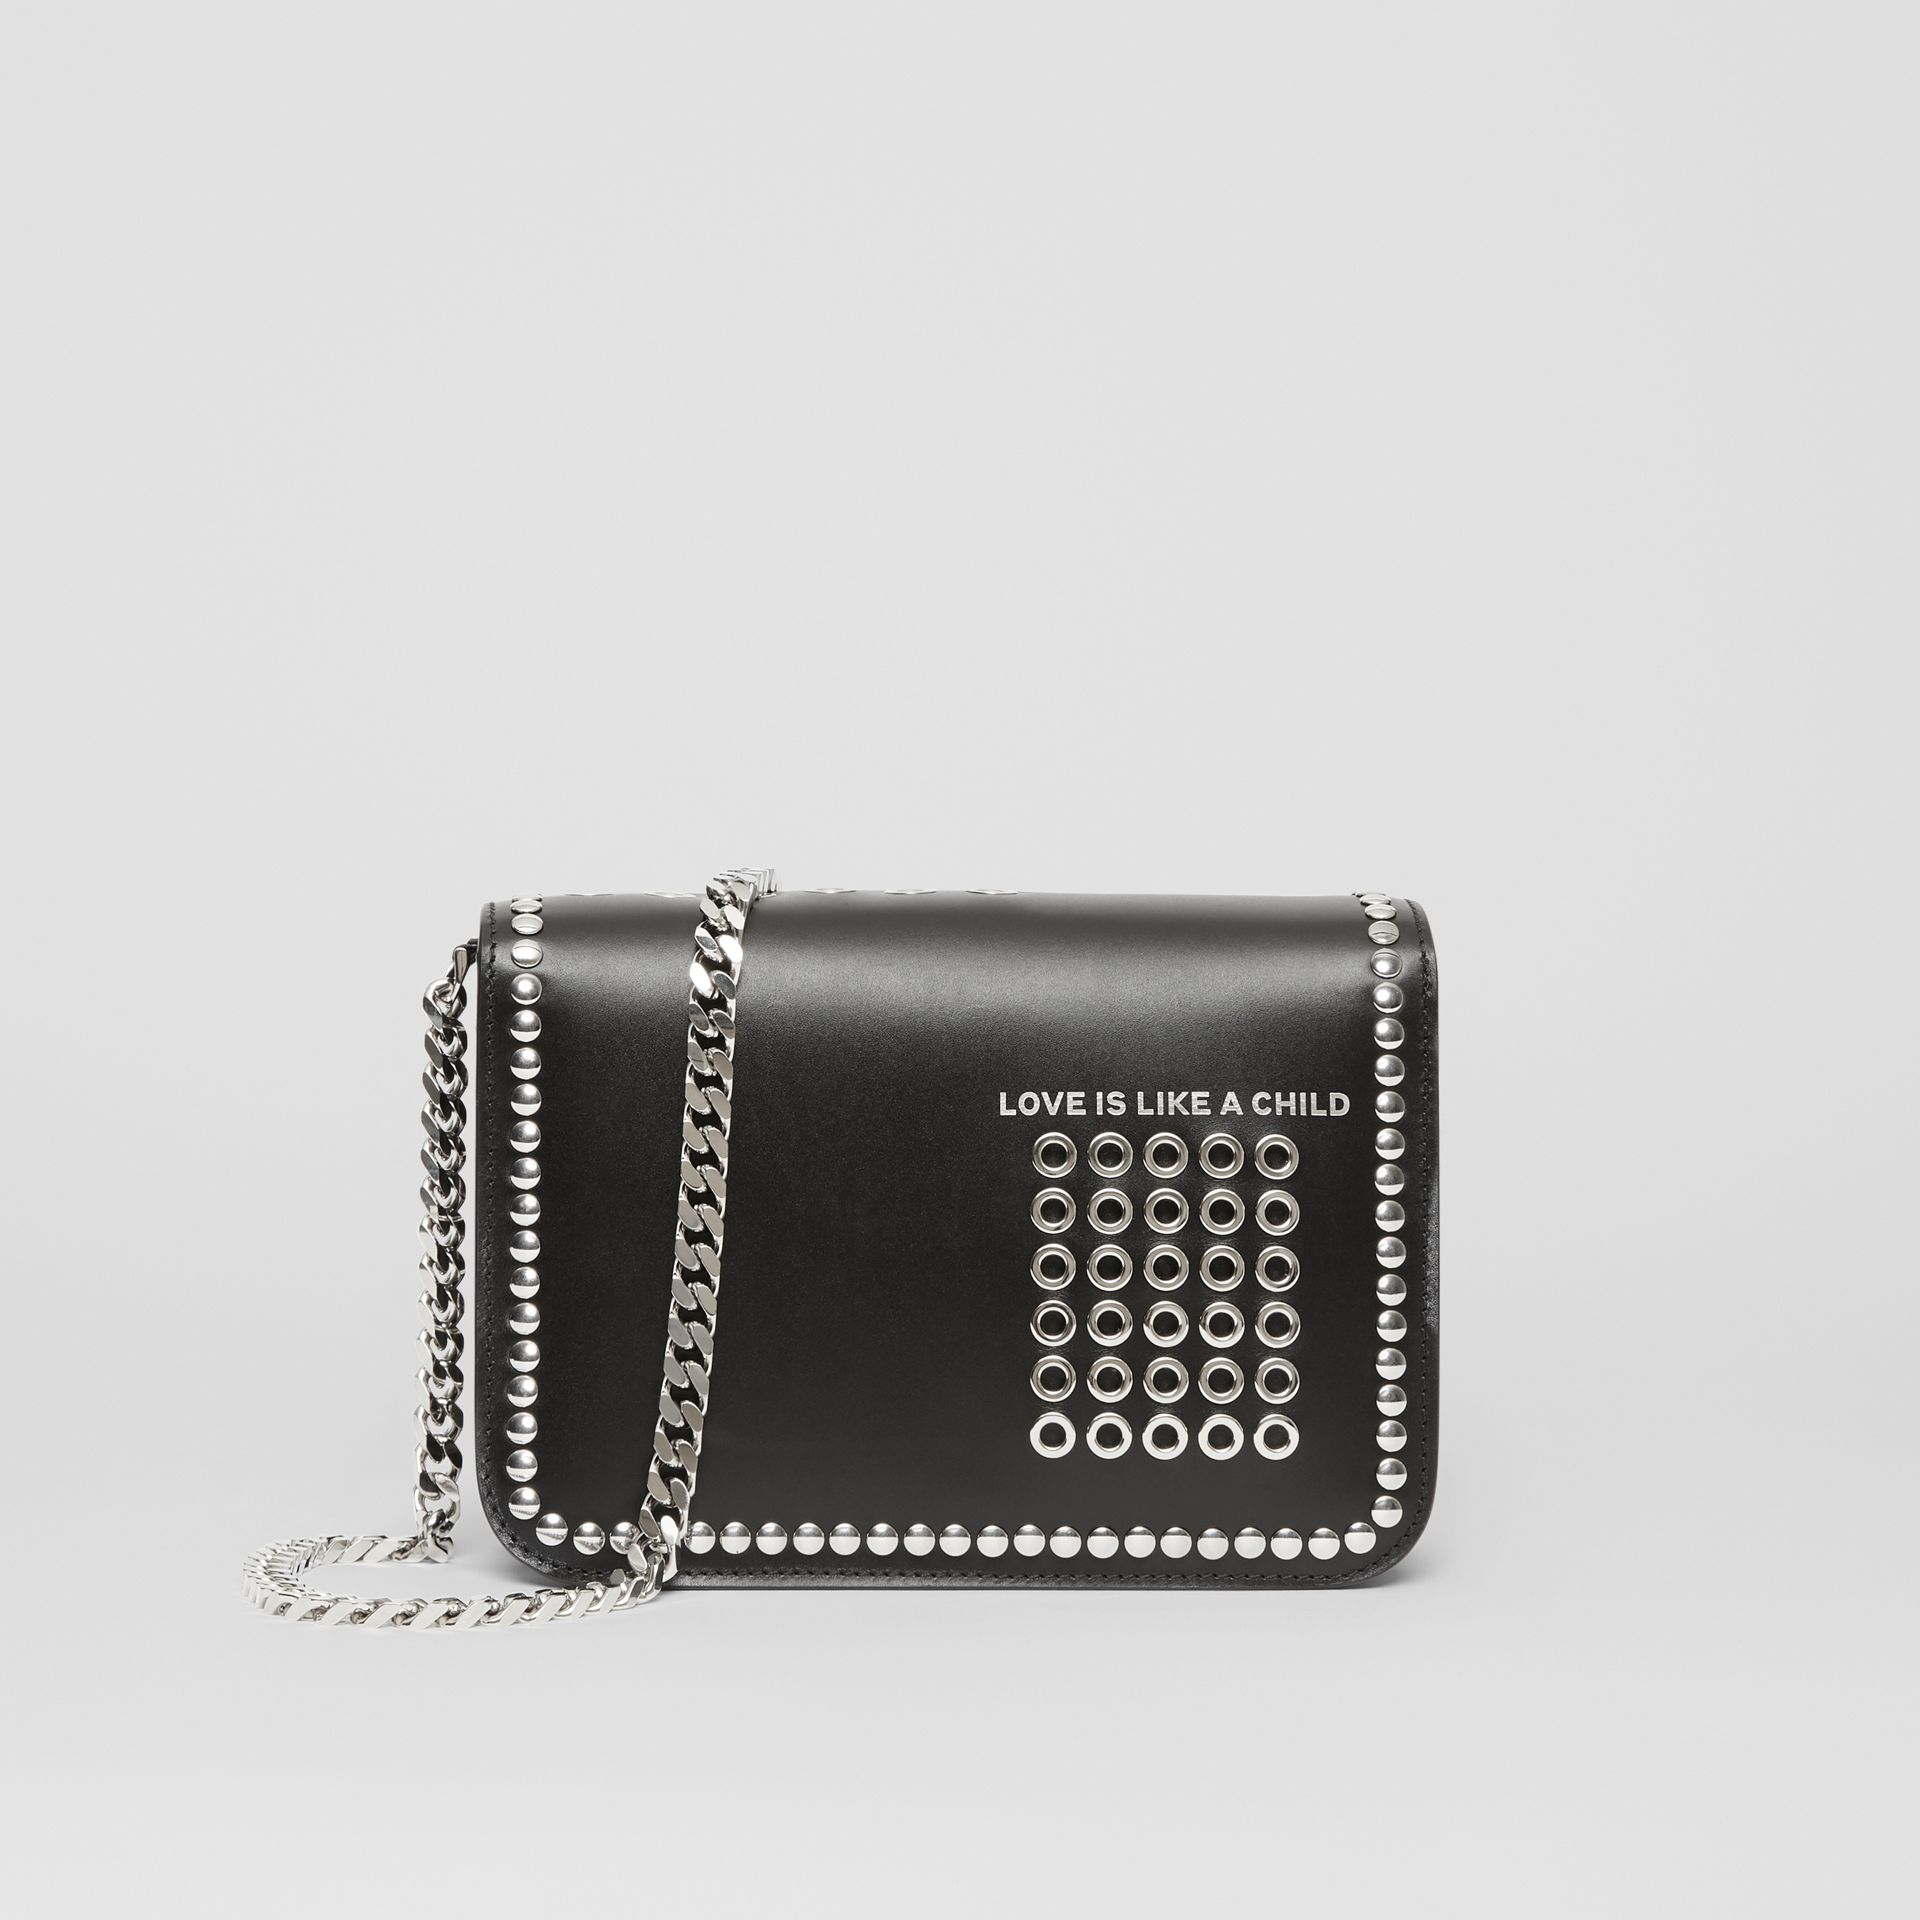 Small Studded Montage Print Leather TB Bag in Black - Women | Burberry - gallery image 7